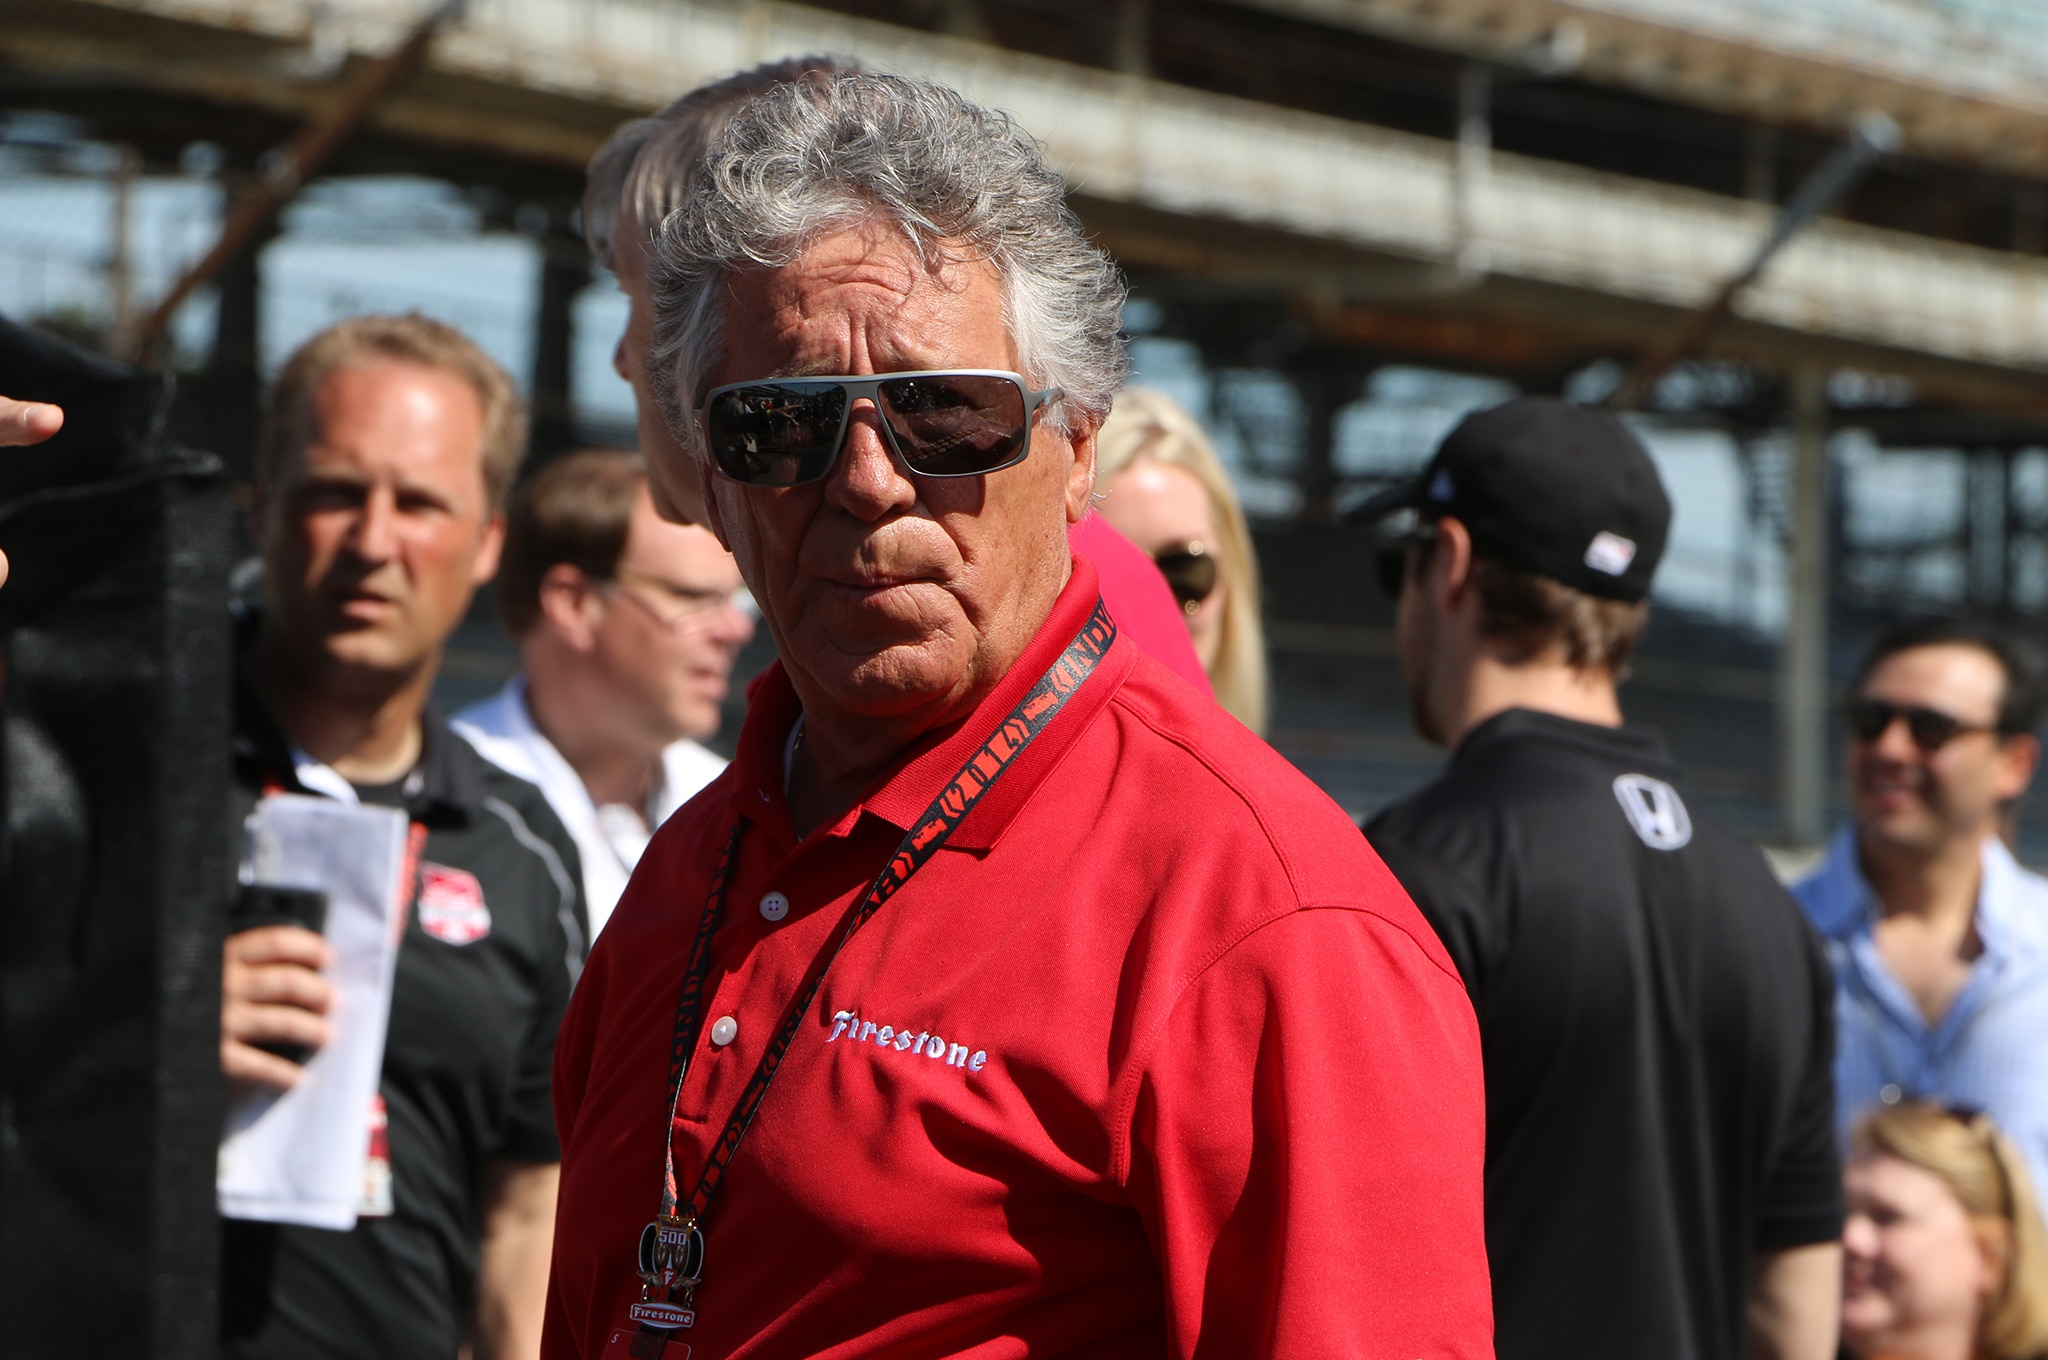 Mario Andretti At Indy 500